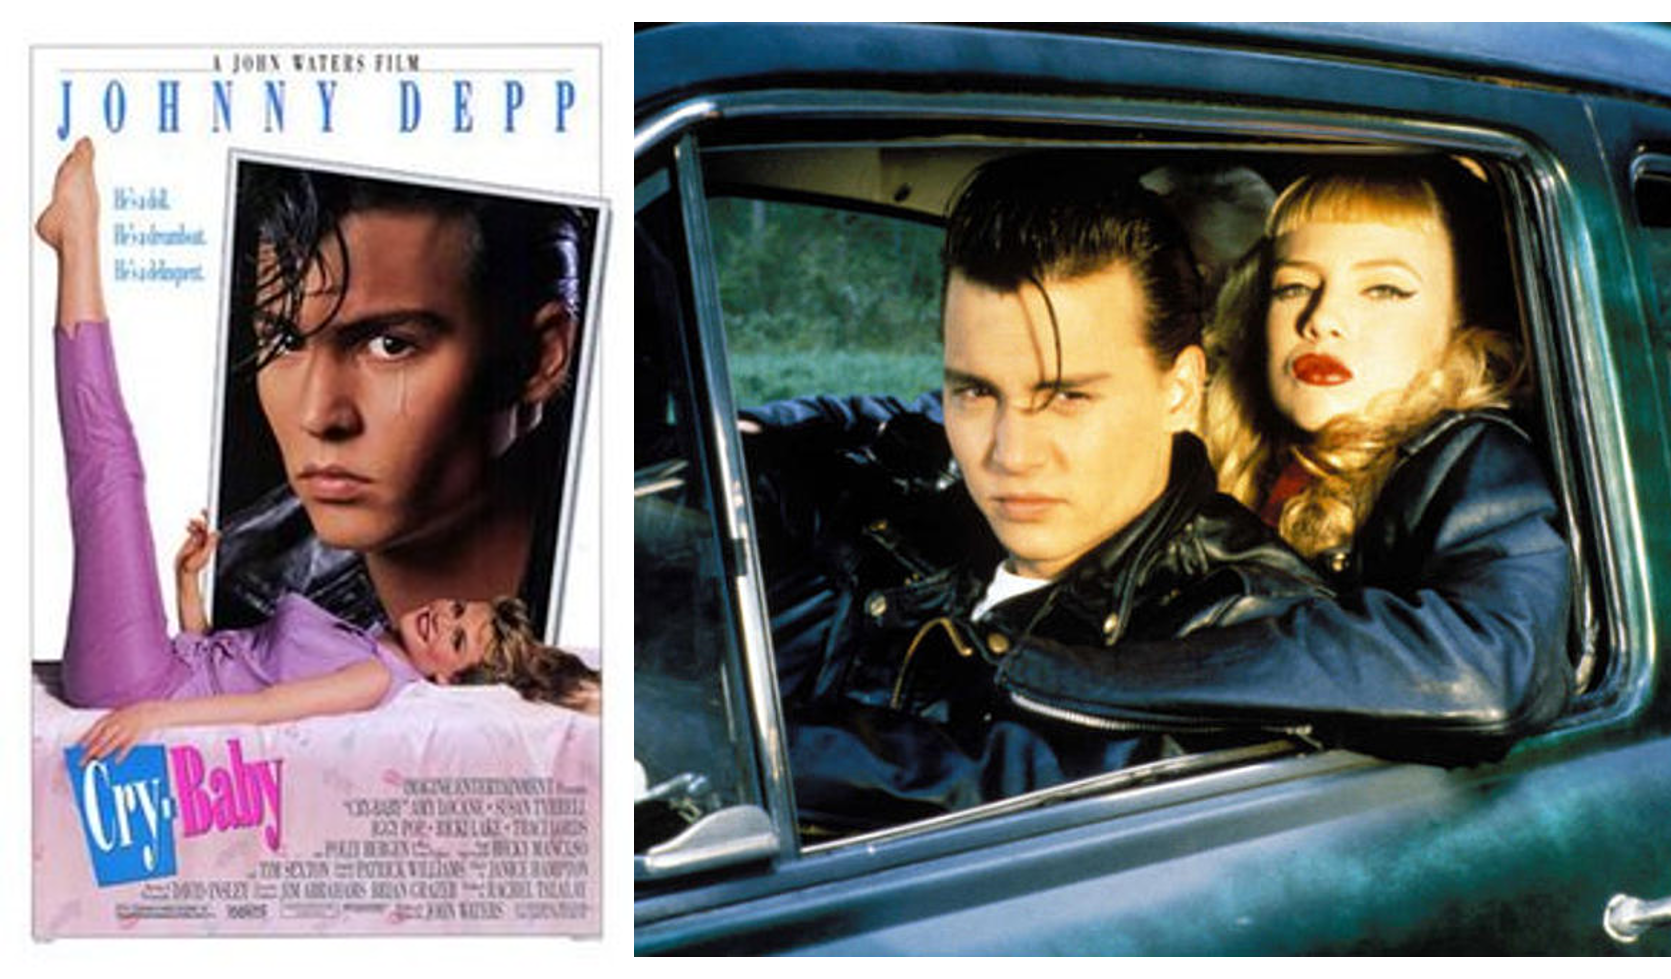 movie cover and male and female actor in a car